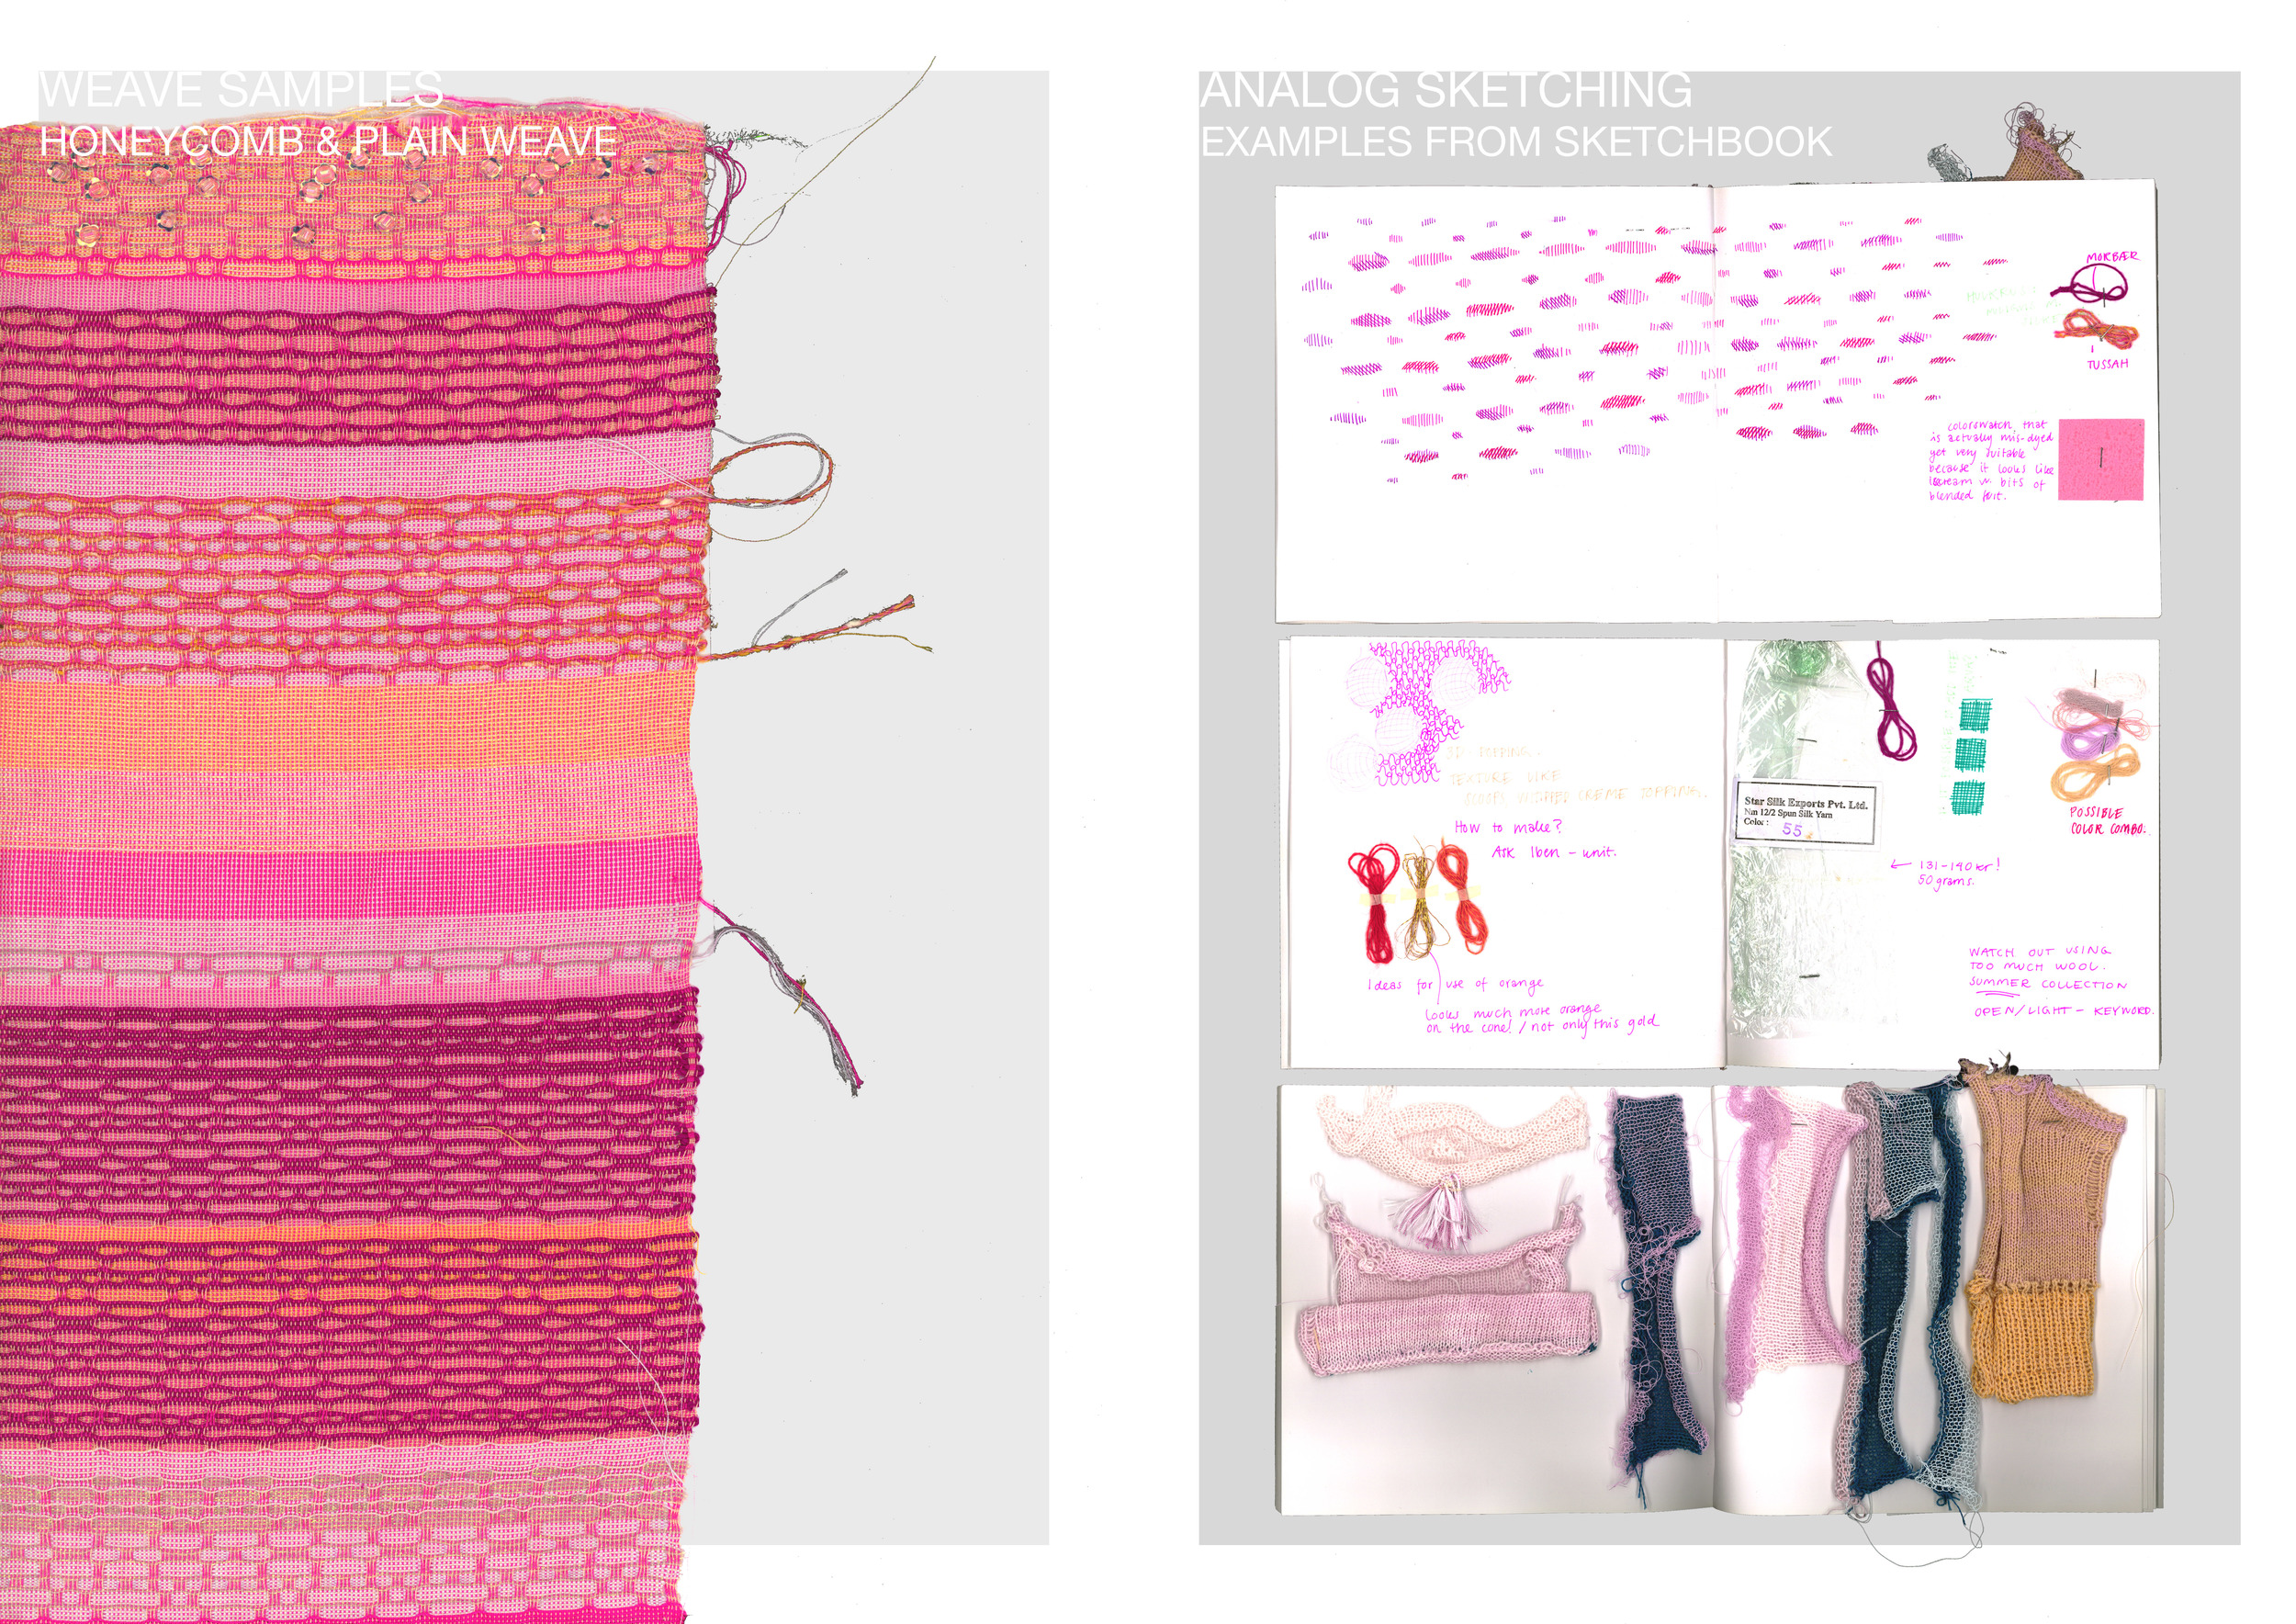 (left) Honeycomb sample with variations to understand the aesthetics of deflected options and yarns applied. (right) sketch book with analog machine knit, pattern + yarn samples.